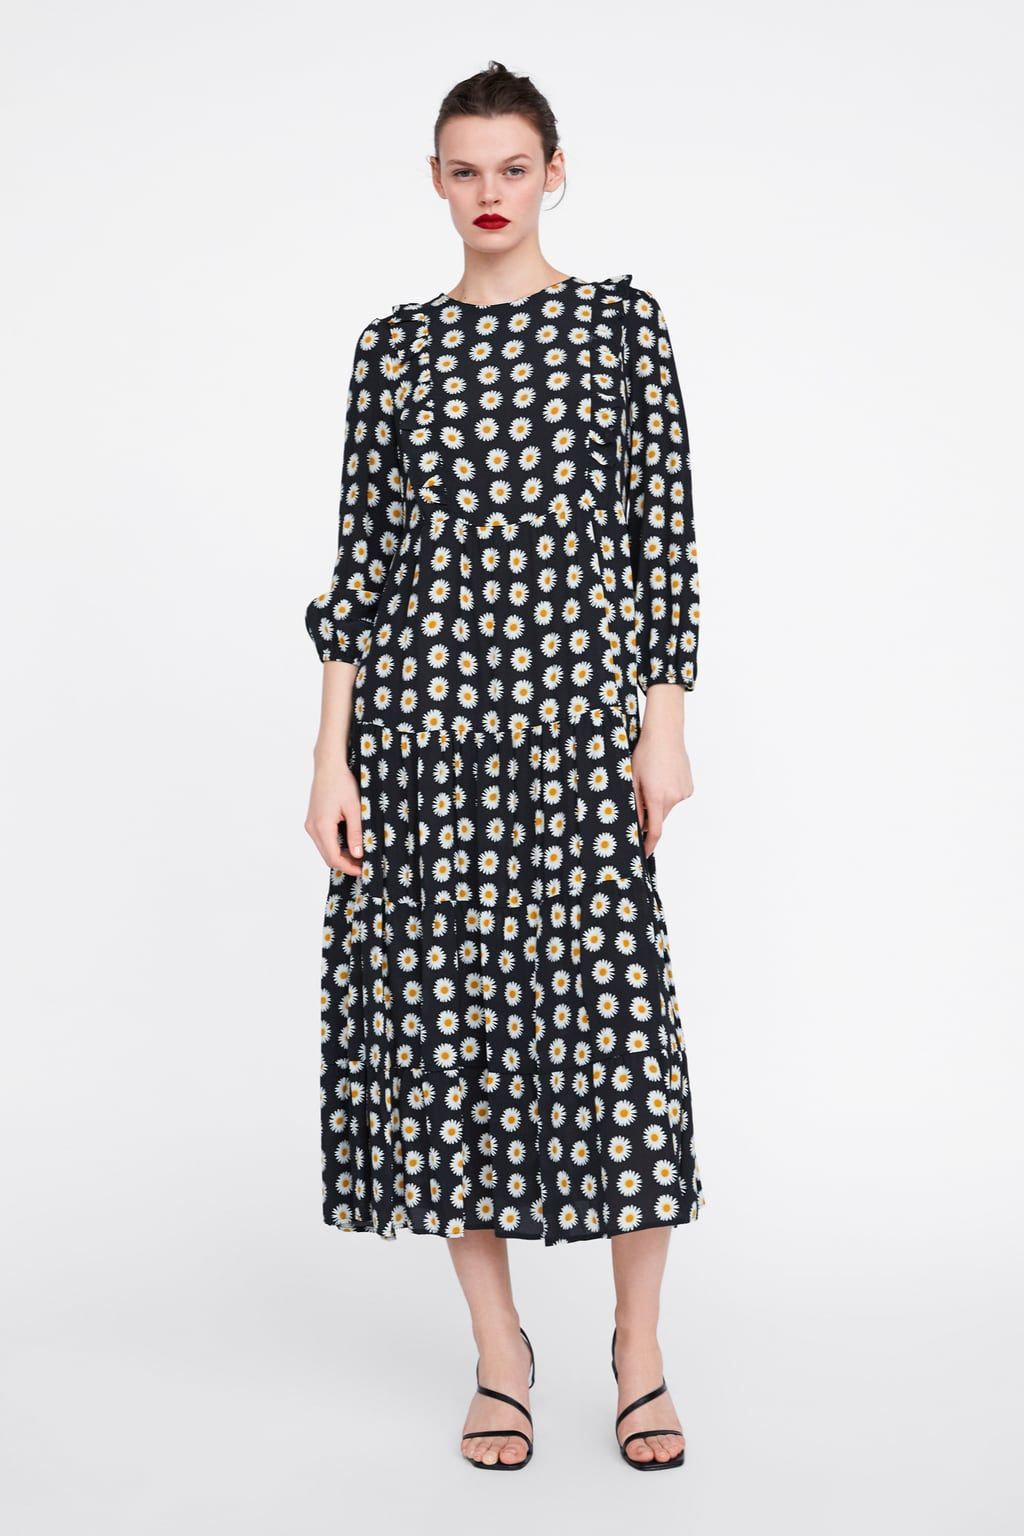 3dc23dd3 RUFFLED FLORAL PRINT DRESS from Zara | The Best of Zara in 2019 ...